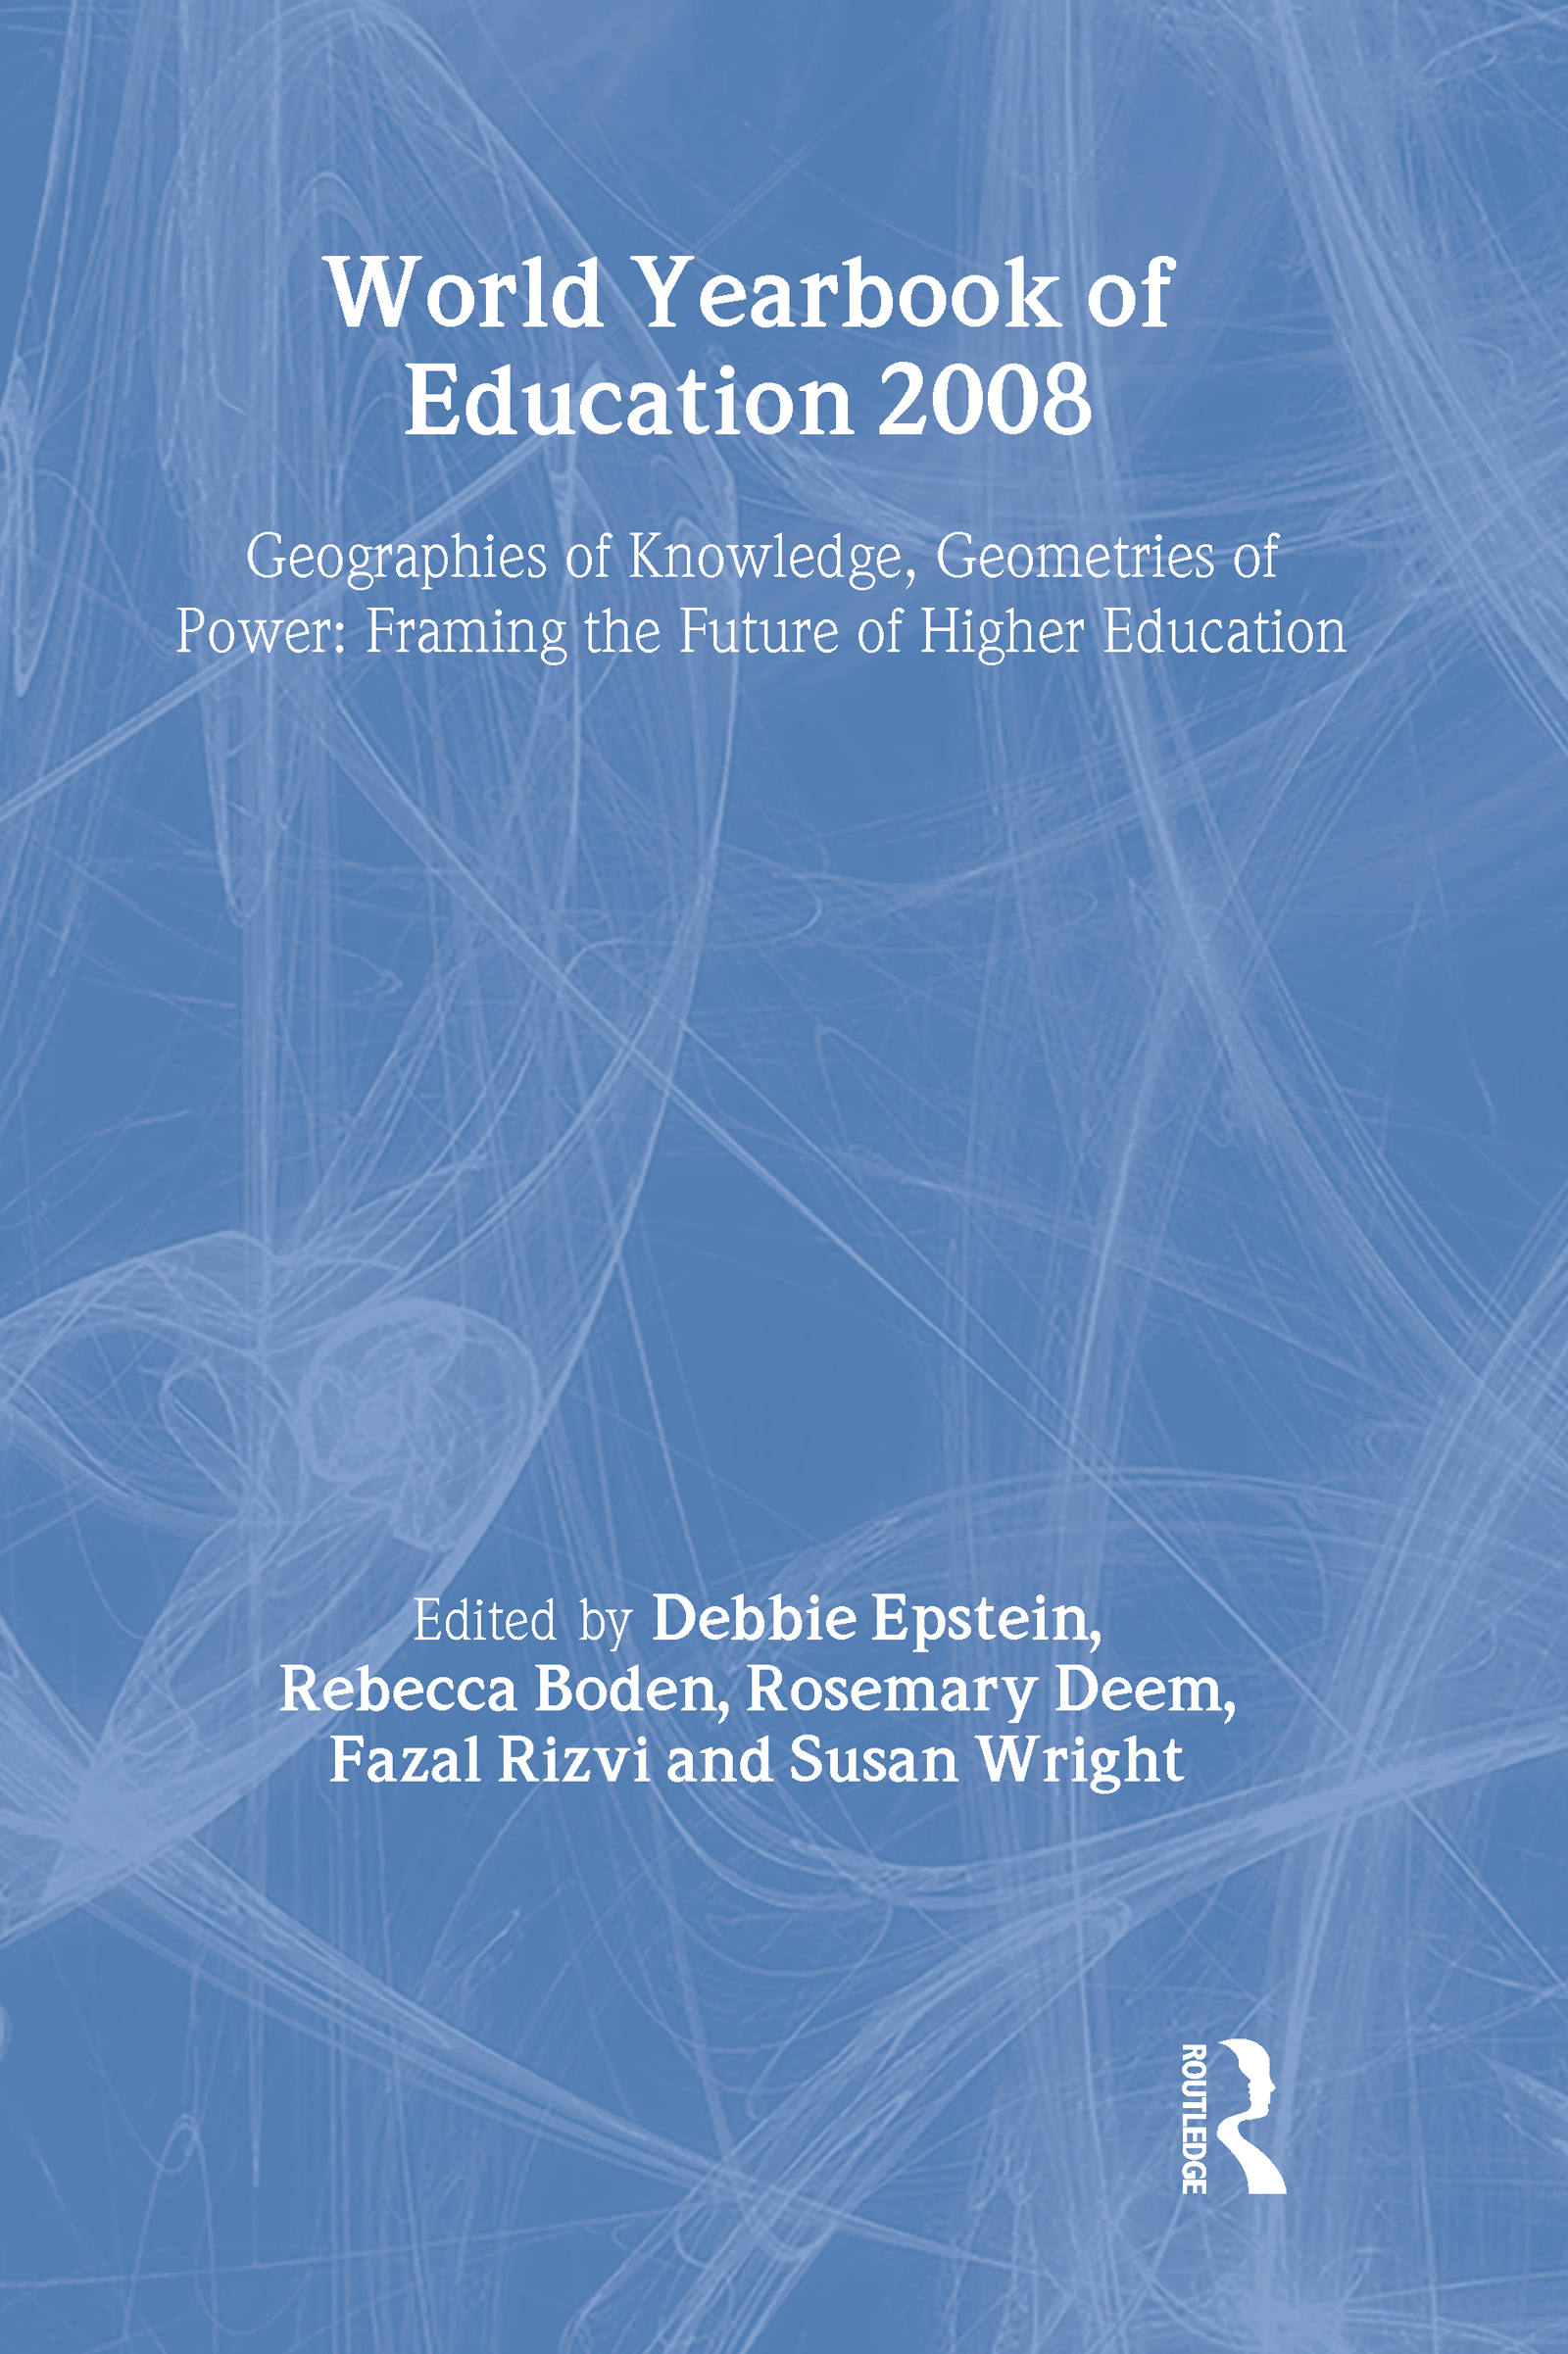 World Yearbook of Education 2008: Geographies of Knowledge, Geometries of Power: Framing the Future of Higher Education (Hardback) book cover